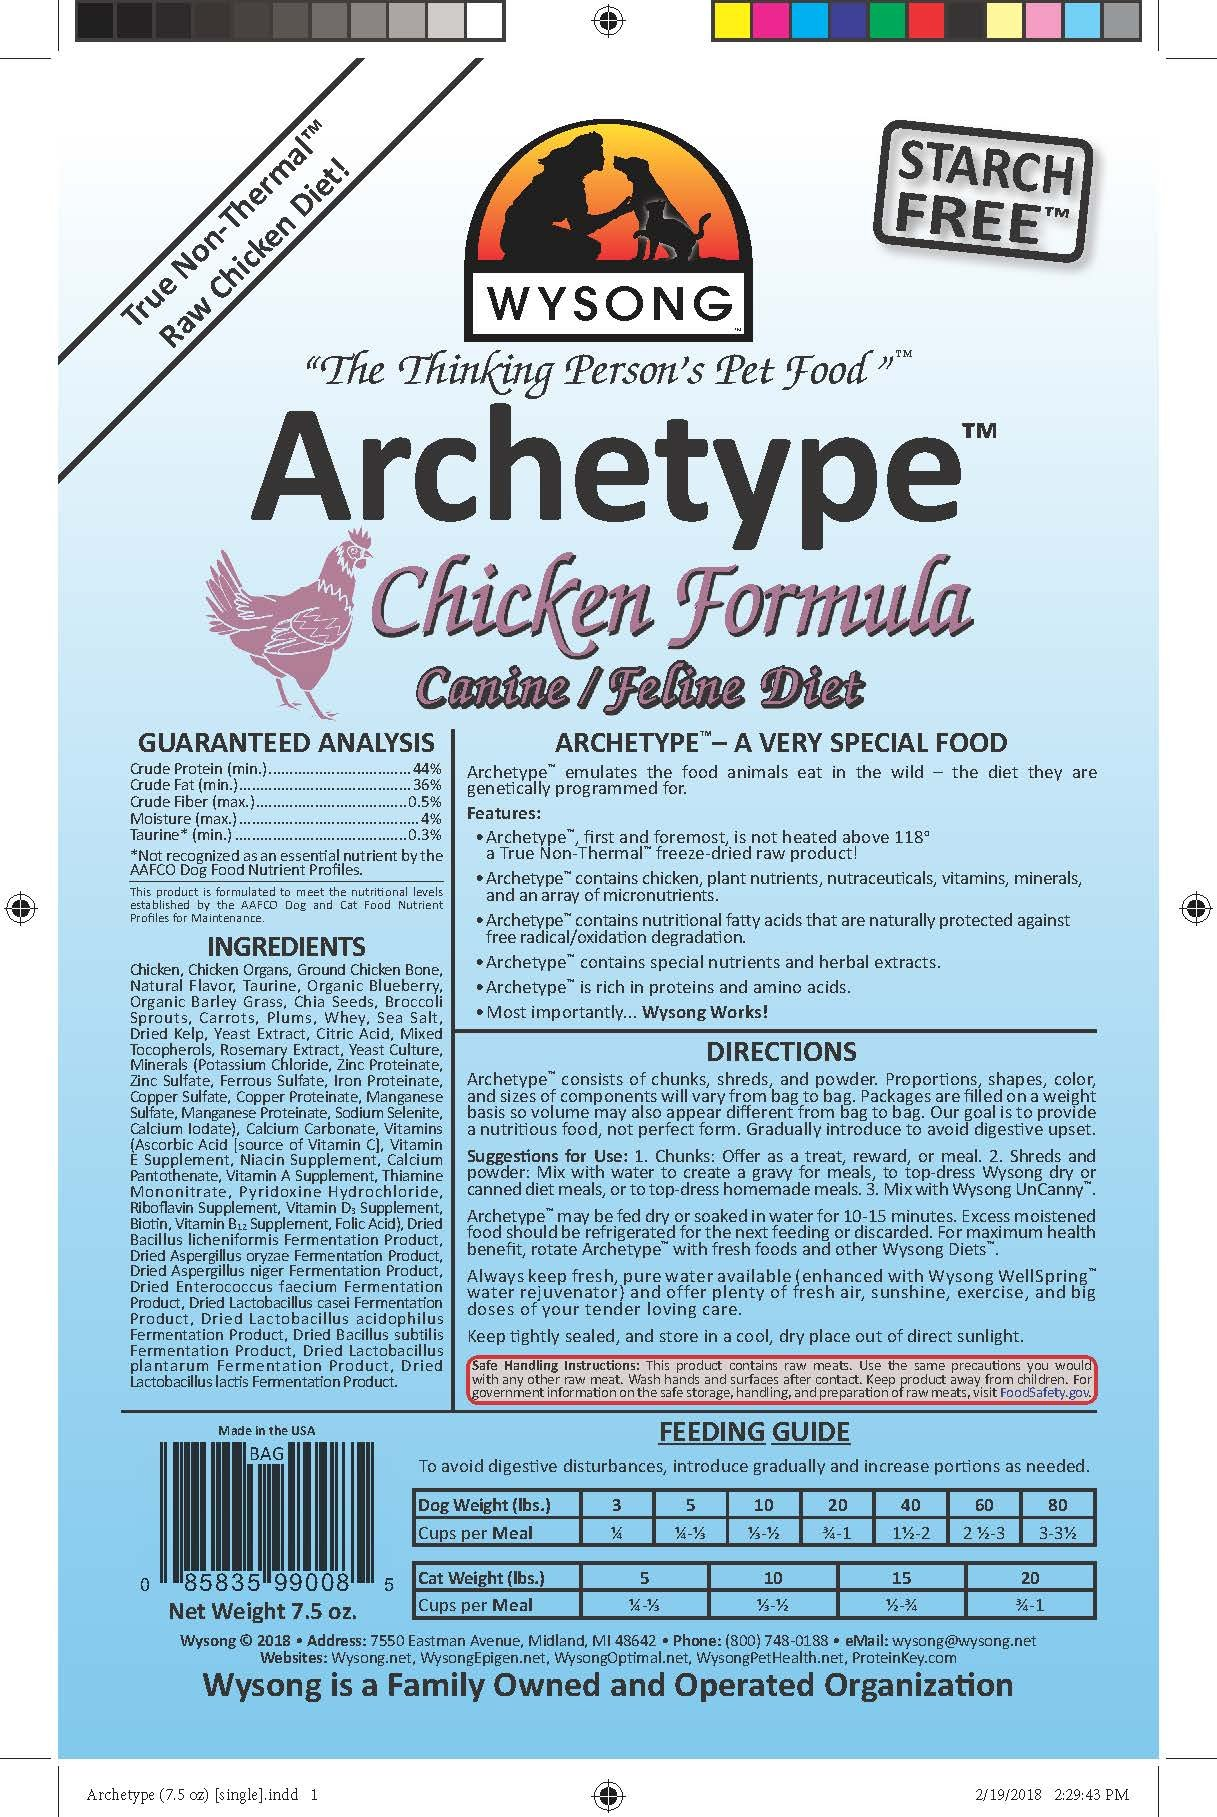 Wysong Archetype Chicken Raw Formula Canine/Feline Diet Dog/Cat Food - 7.5 Ounce Bag by Wysong